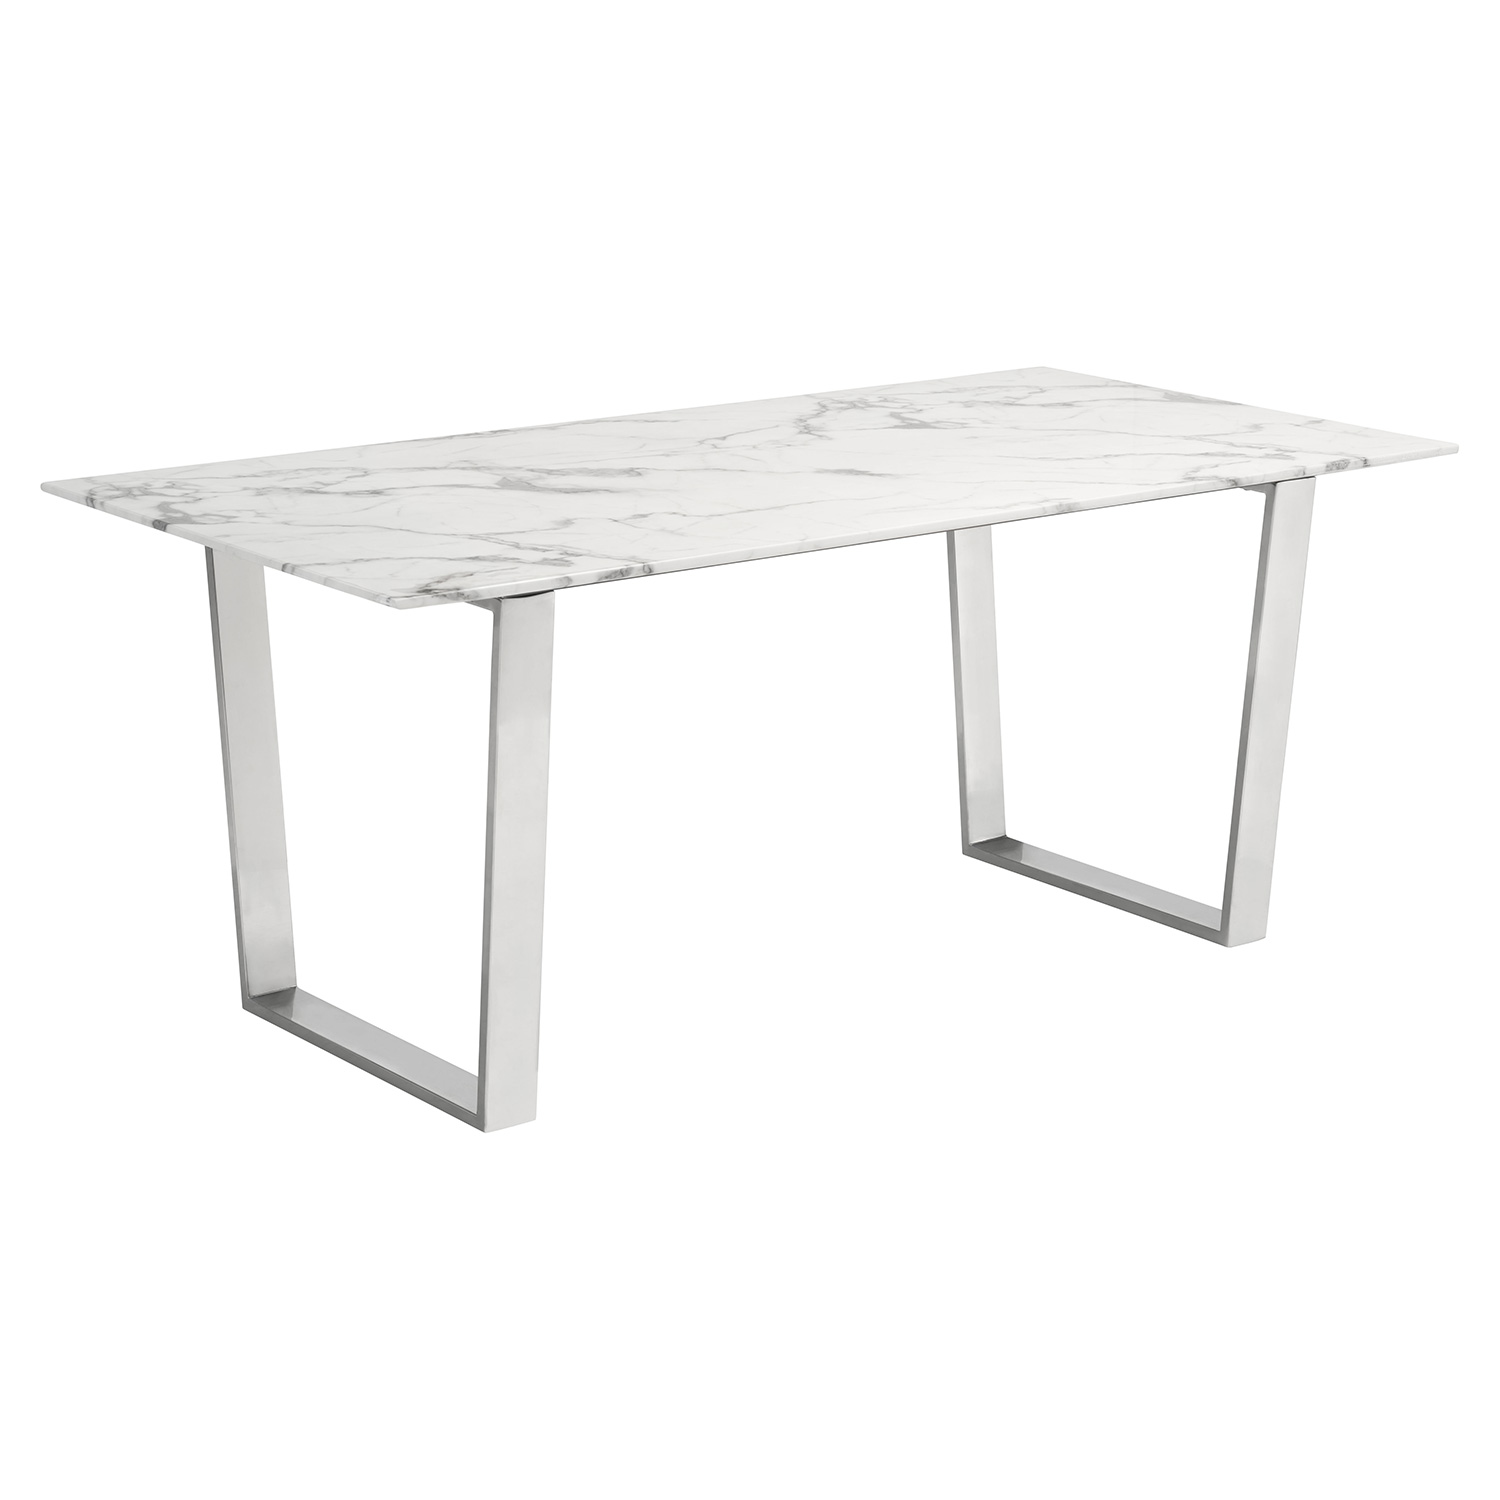 Atlas 70 Dining Table W Faux Marble Top On Stainless Steel Legs By Zuo